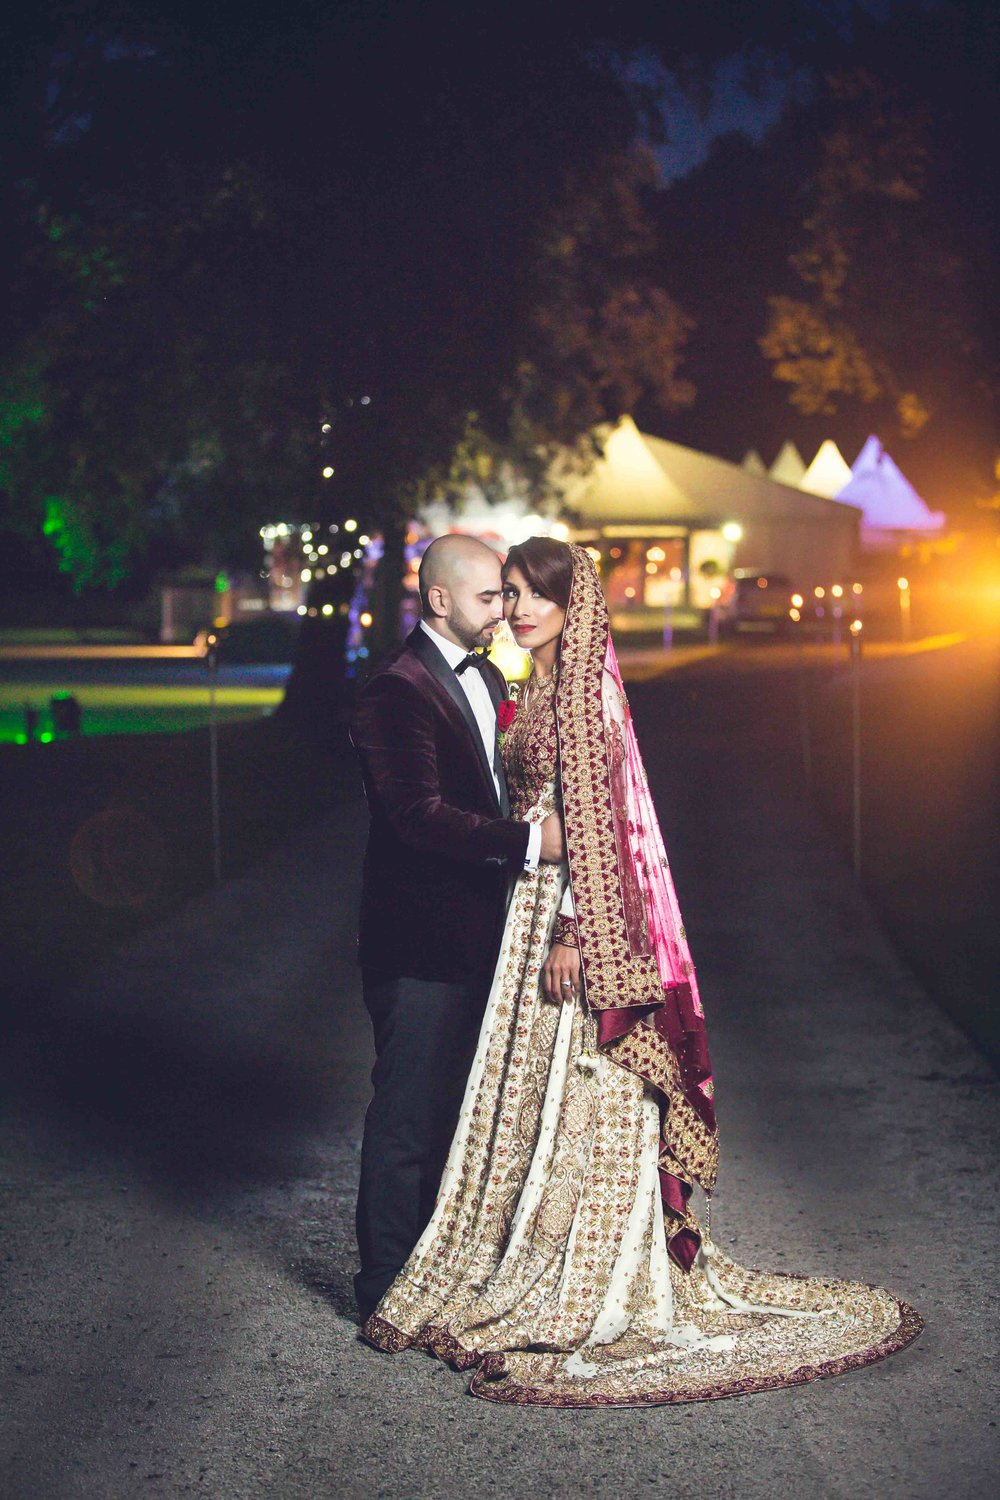 Asian Wedding Photographer Opu Sultan Photography Lyme Park Scotland Edinburgh Glasgow London Manchester Liverpool Birmingham Wedding Photos prewed shoot Azman & Saira Blog-136.jpg